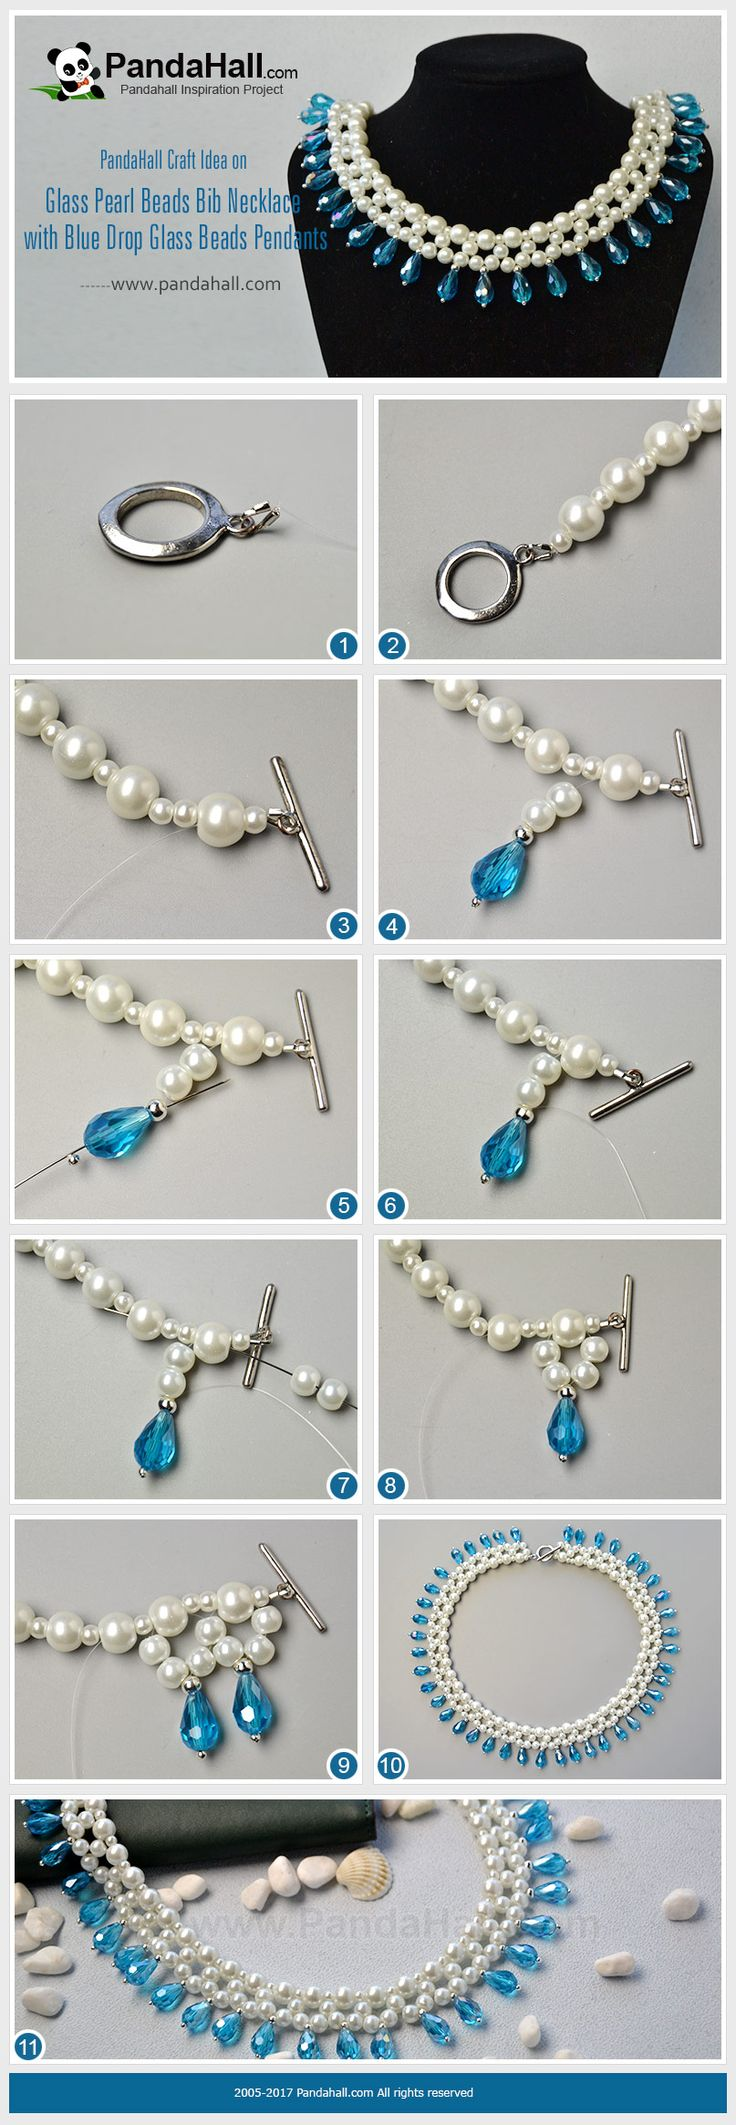 PandaHall Inspiration Project----Glass #Pearl Beads Bib Necklace with Blue Drop Glass Beads Pendants Do you wanna a piece of elegant pearl necklace? Then you may be interested in today's craft on glass pearl beads bib necklace. #PandaHall #inspiration #jewelry #necklace #jewelrymaking #craft #tutorial #diy